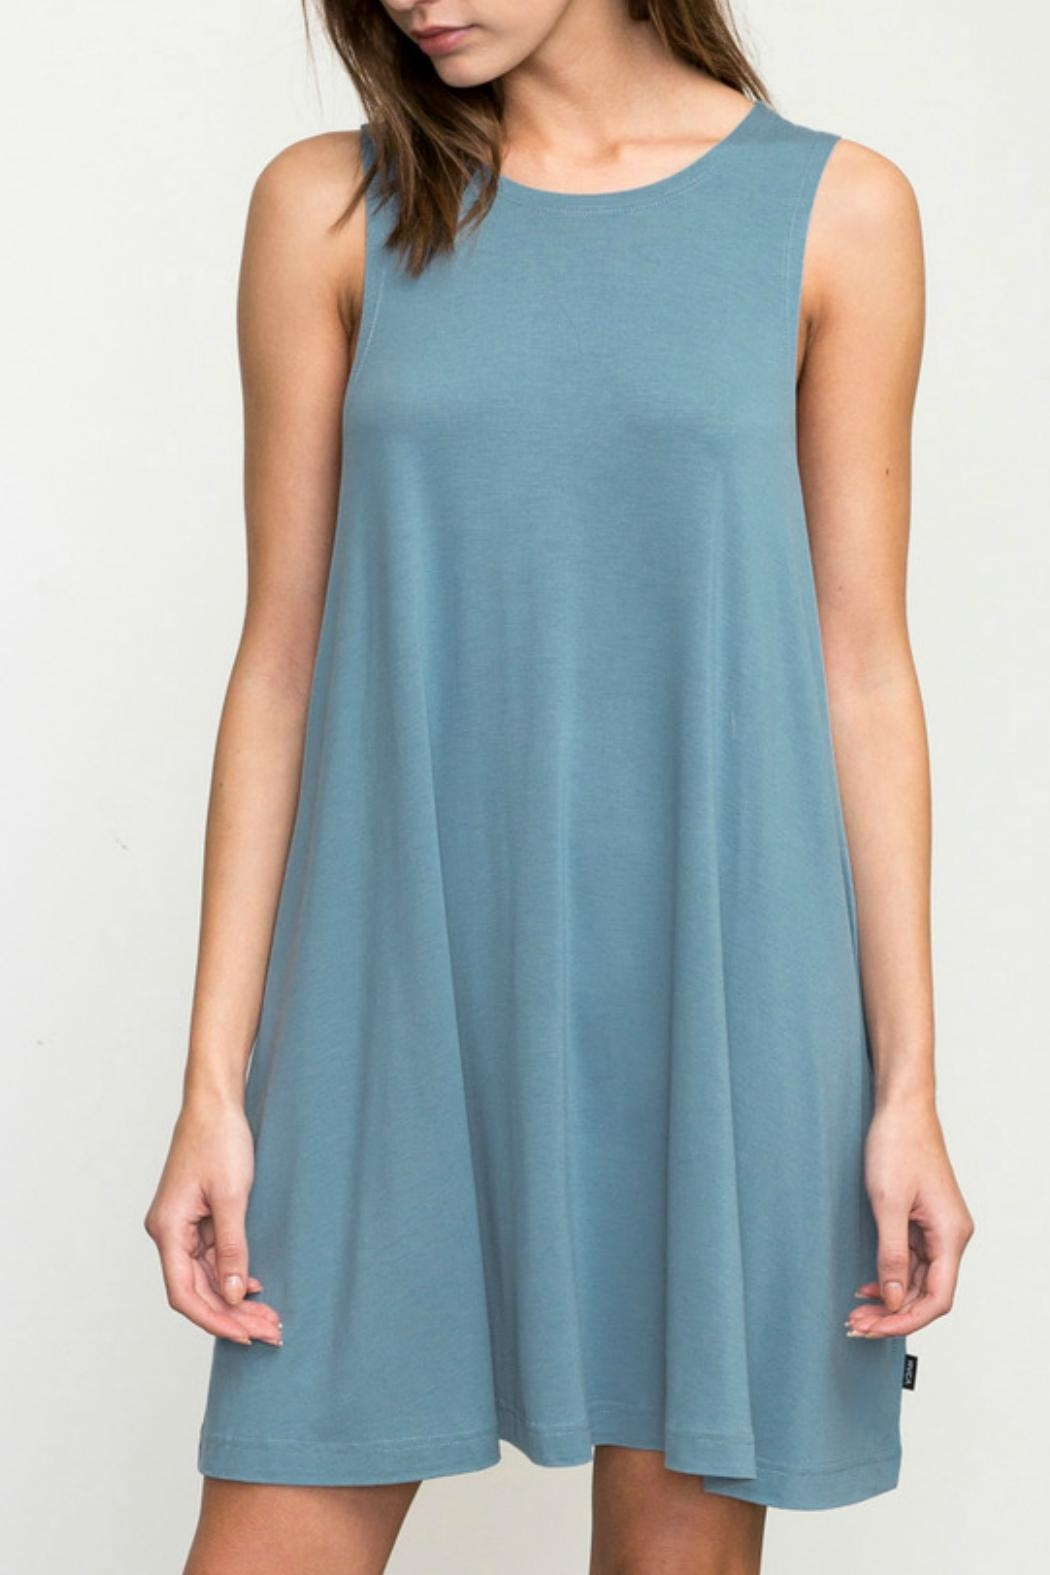 RVCA Teal Swing Dress - Main Image